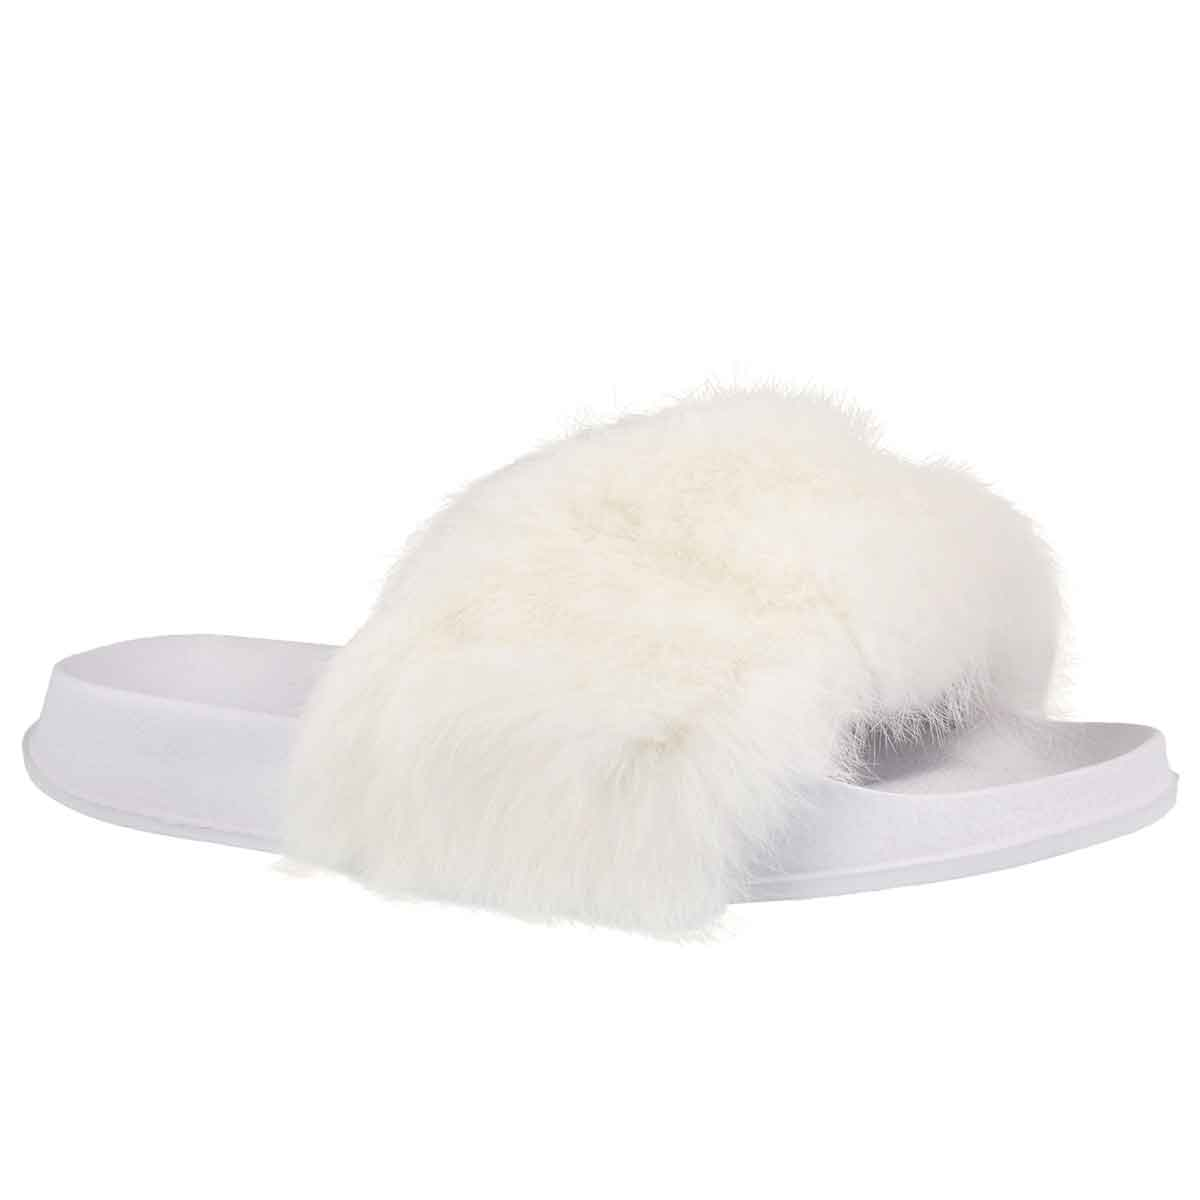 Lds Erica white fur slide slipper